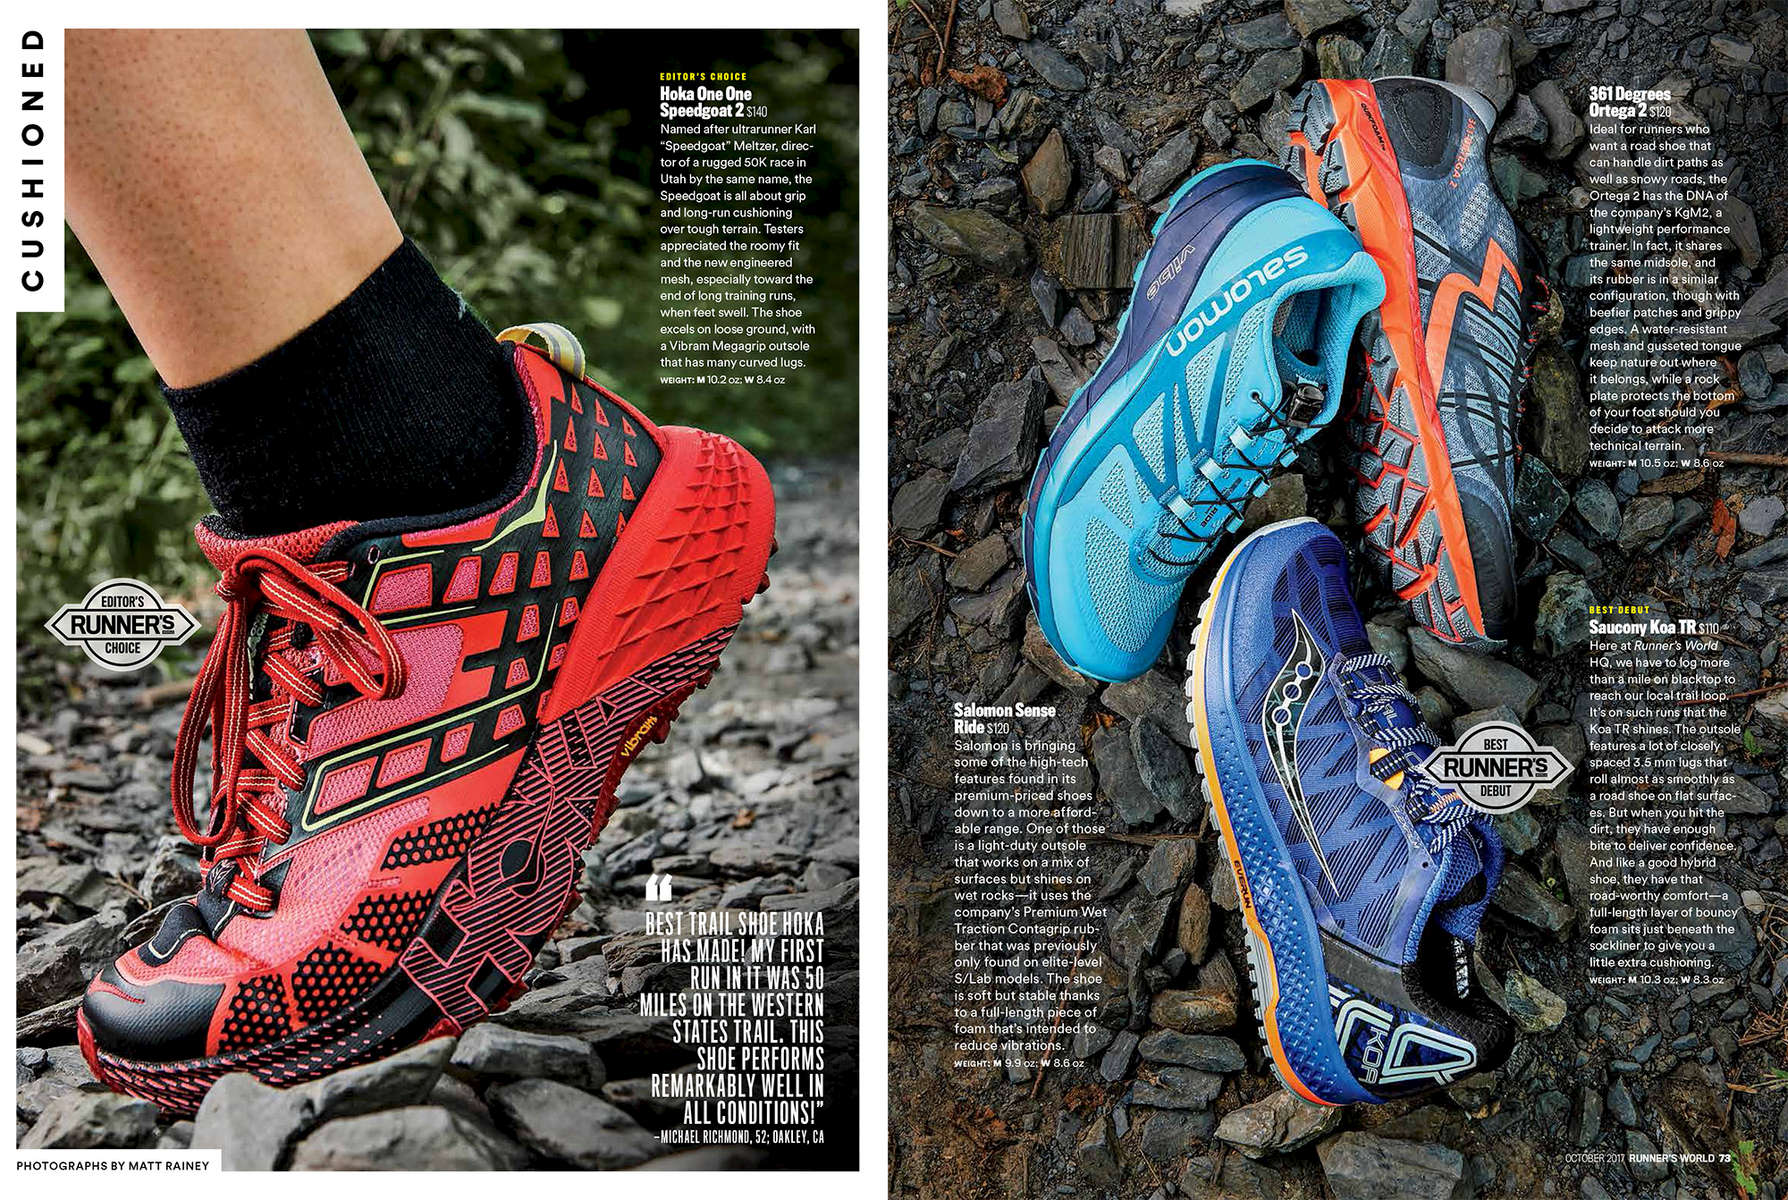 Photographed for Runner's World Magazine